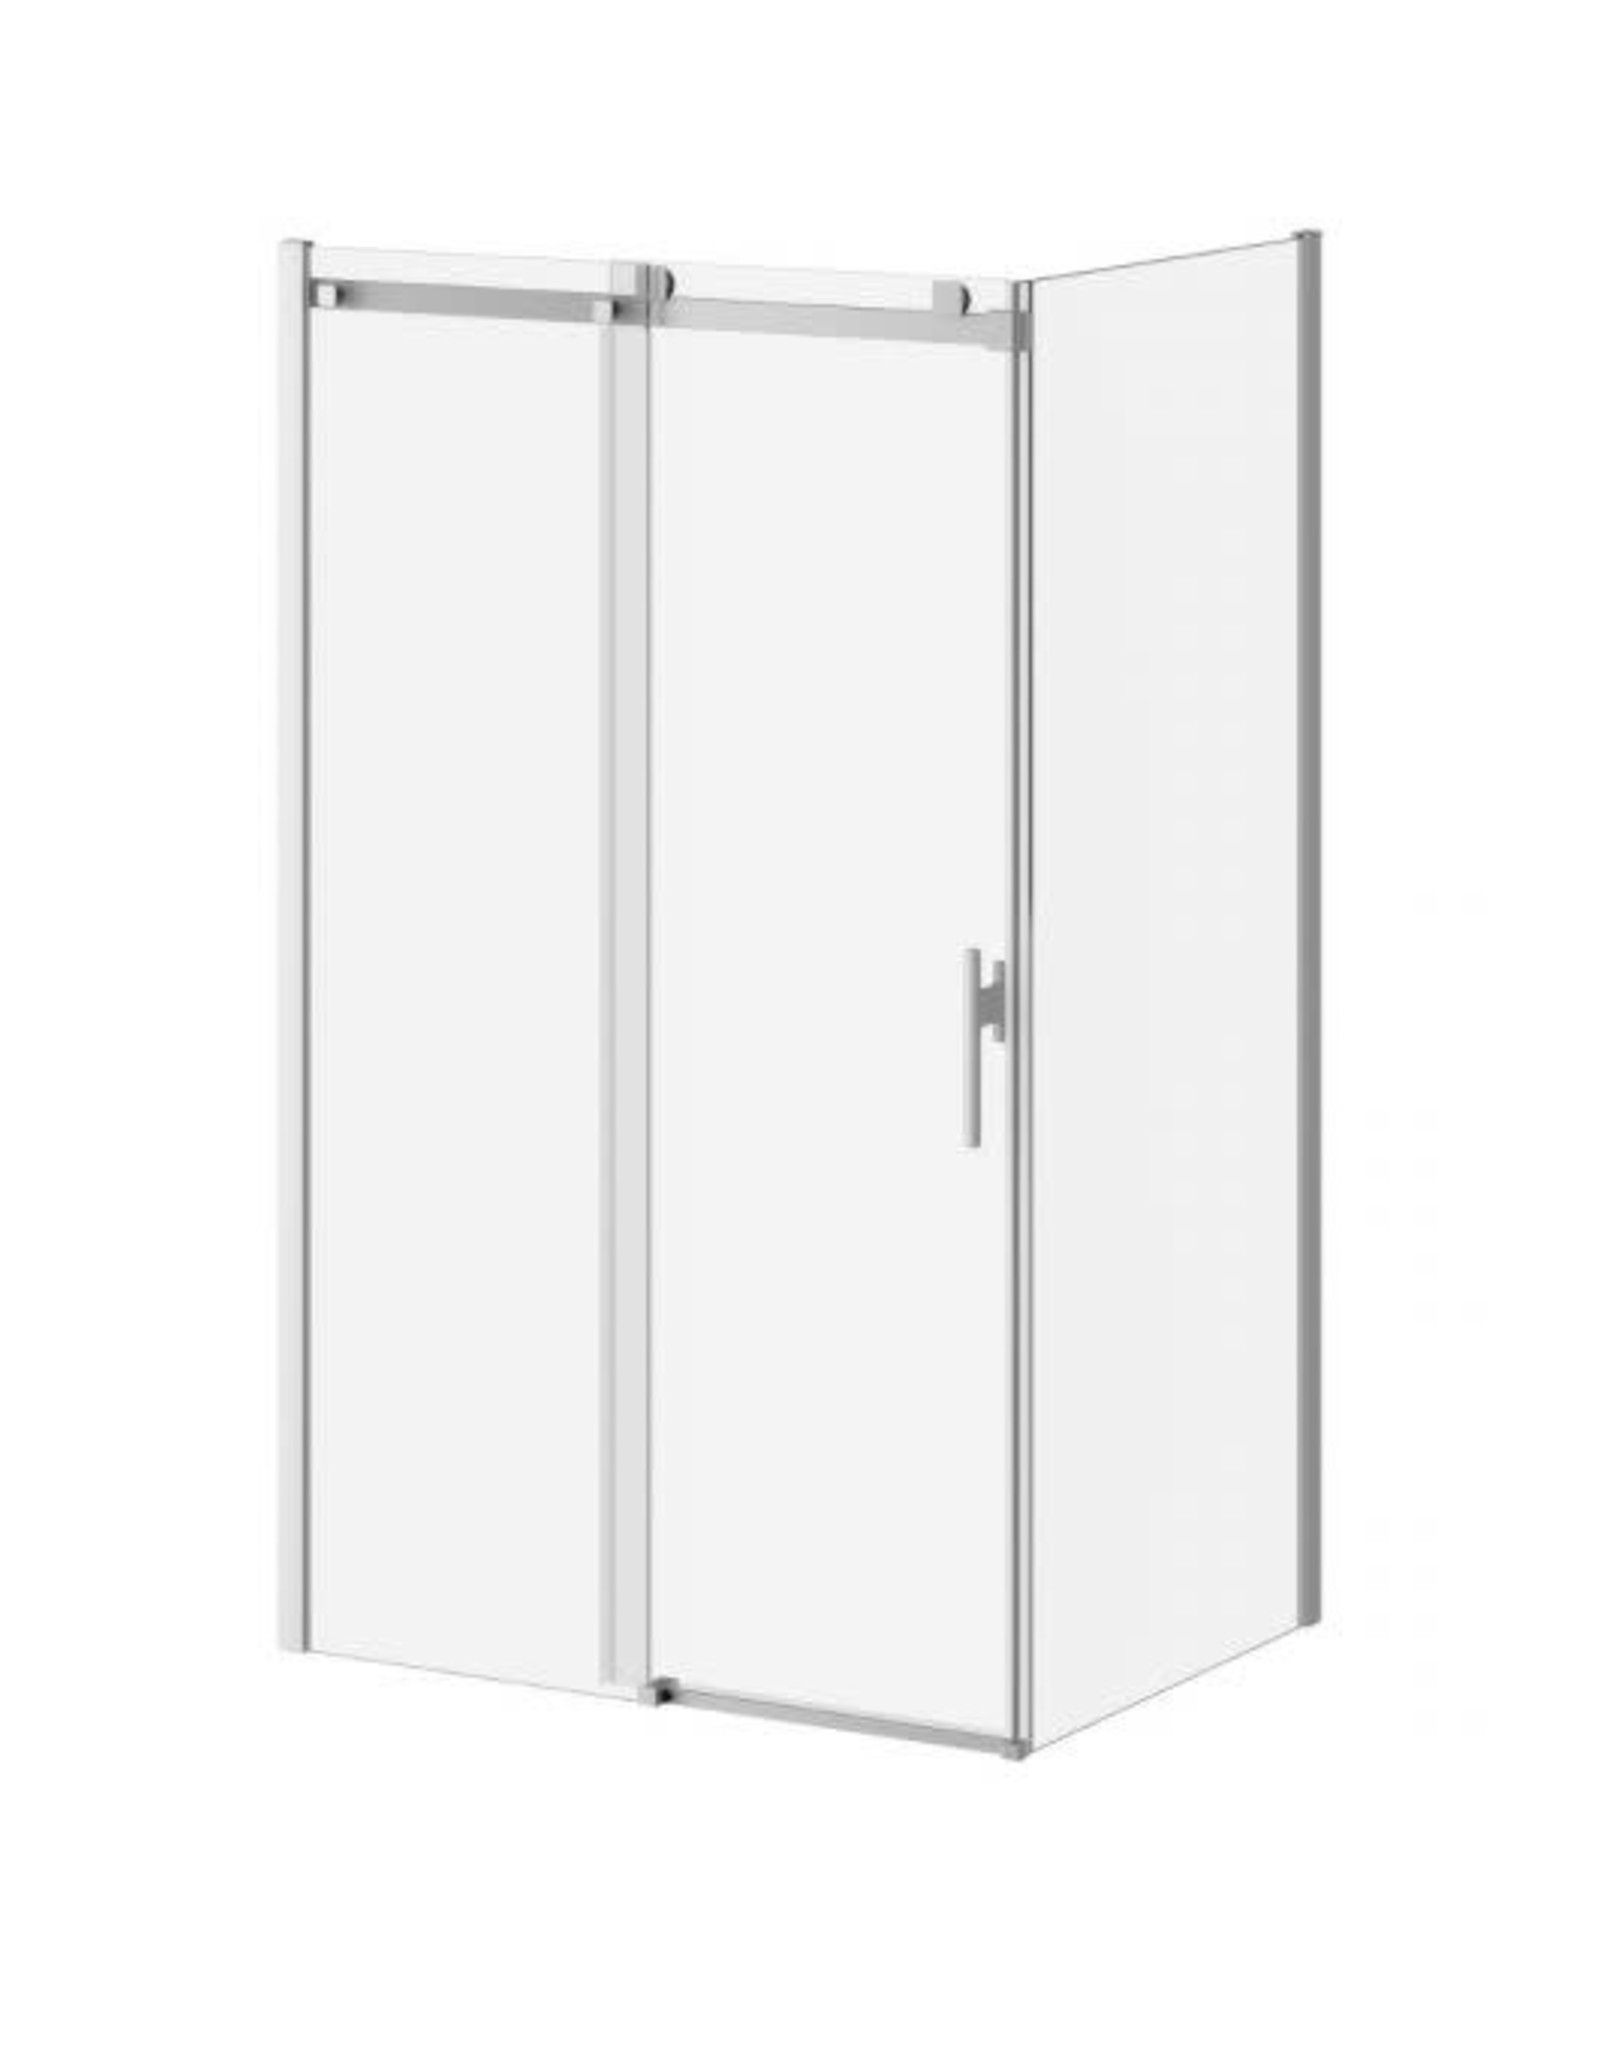 "Kalia Kalia Koncept Evo 48""x36"" Glass Door w Return Chrome/Clear"